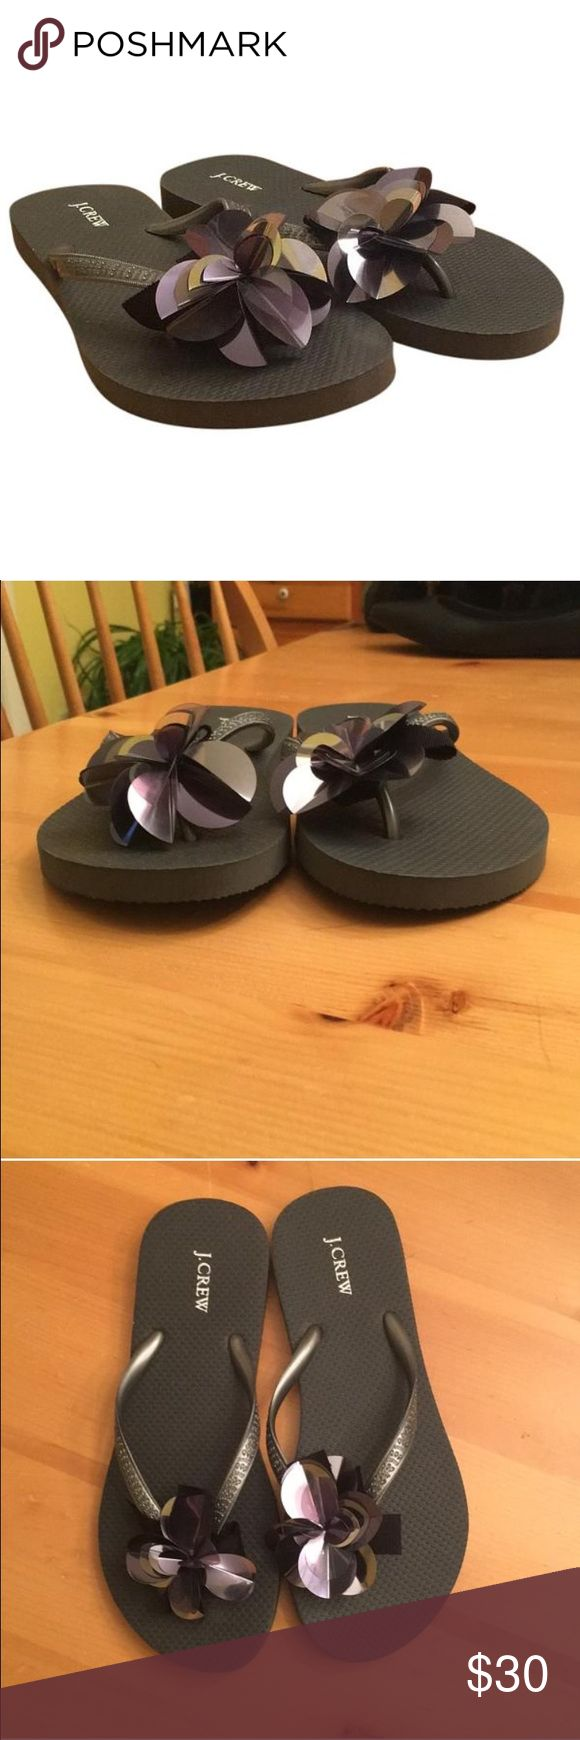 J. Crew Pewter Sandals Gray/pewter flip flops with sequin flower accent. J. Crew Shoes Sandals